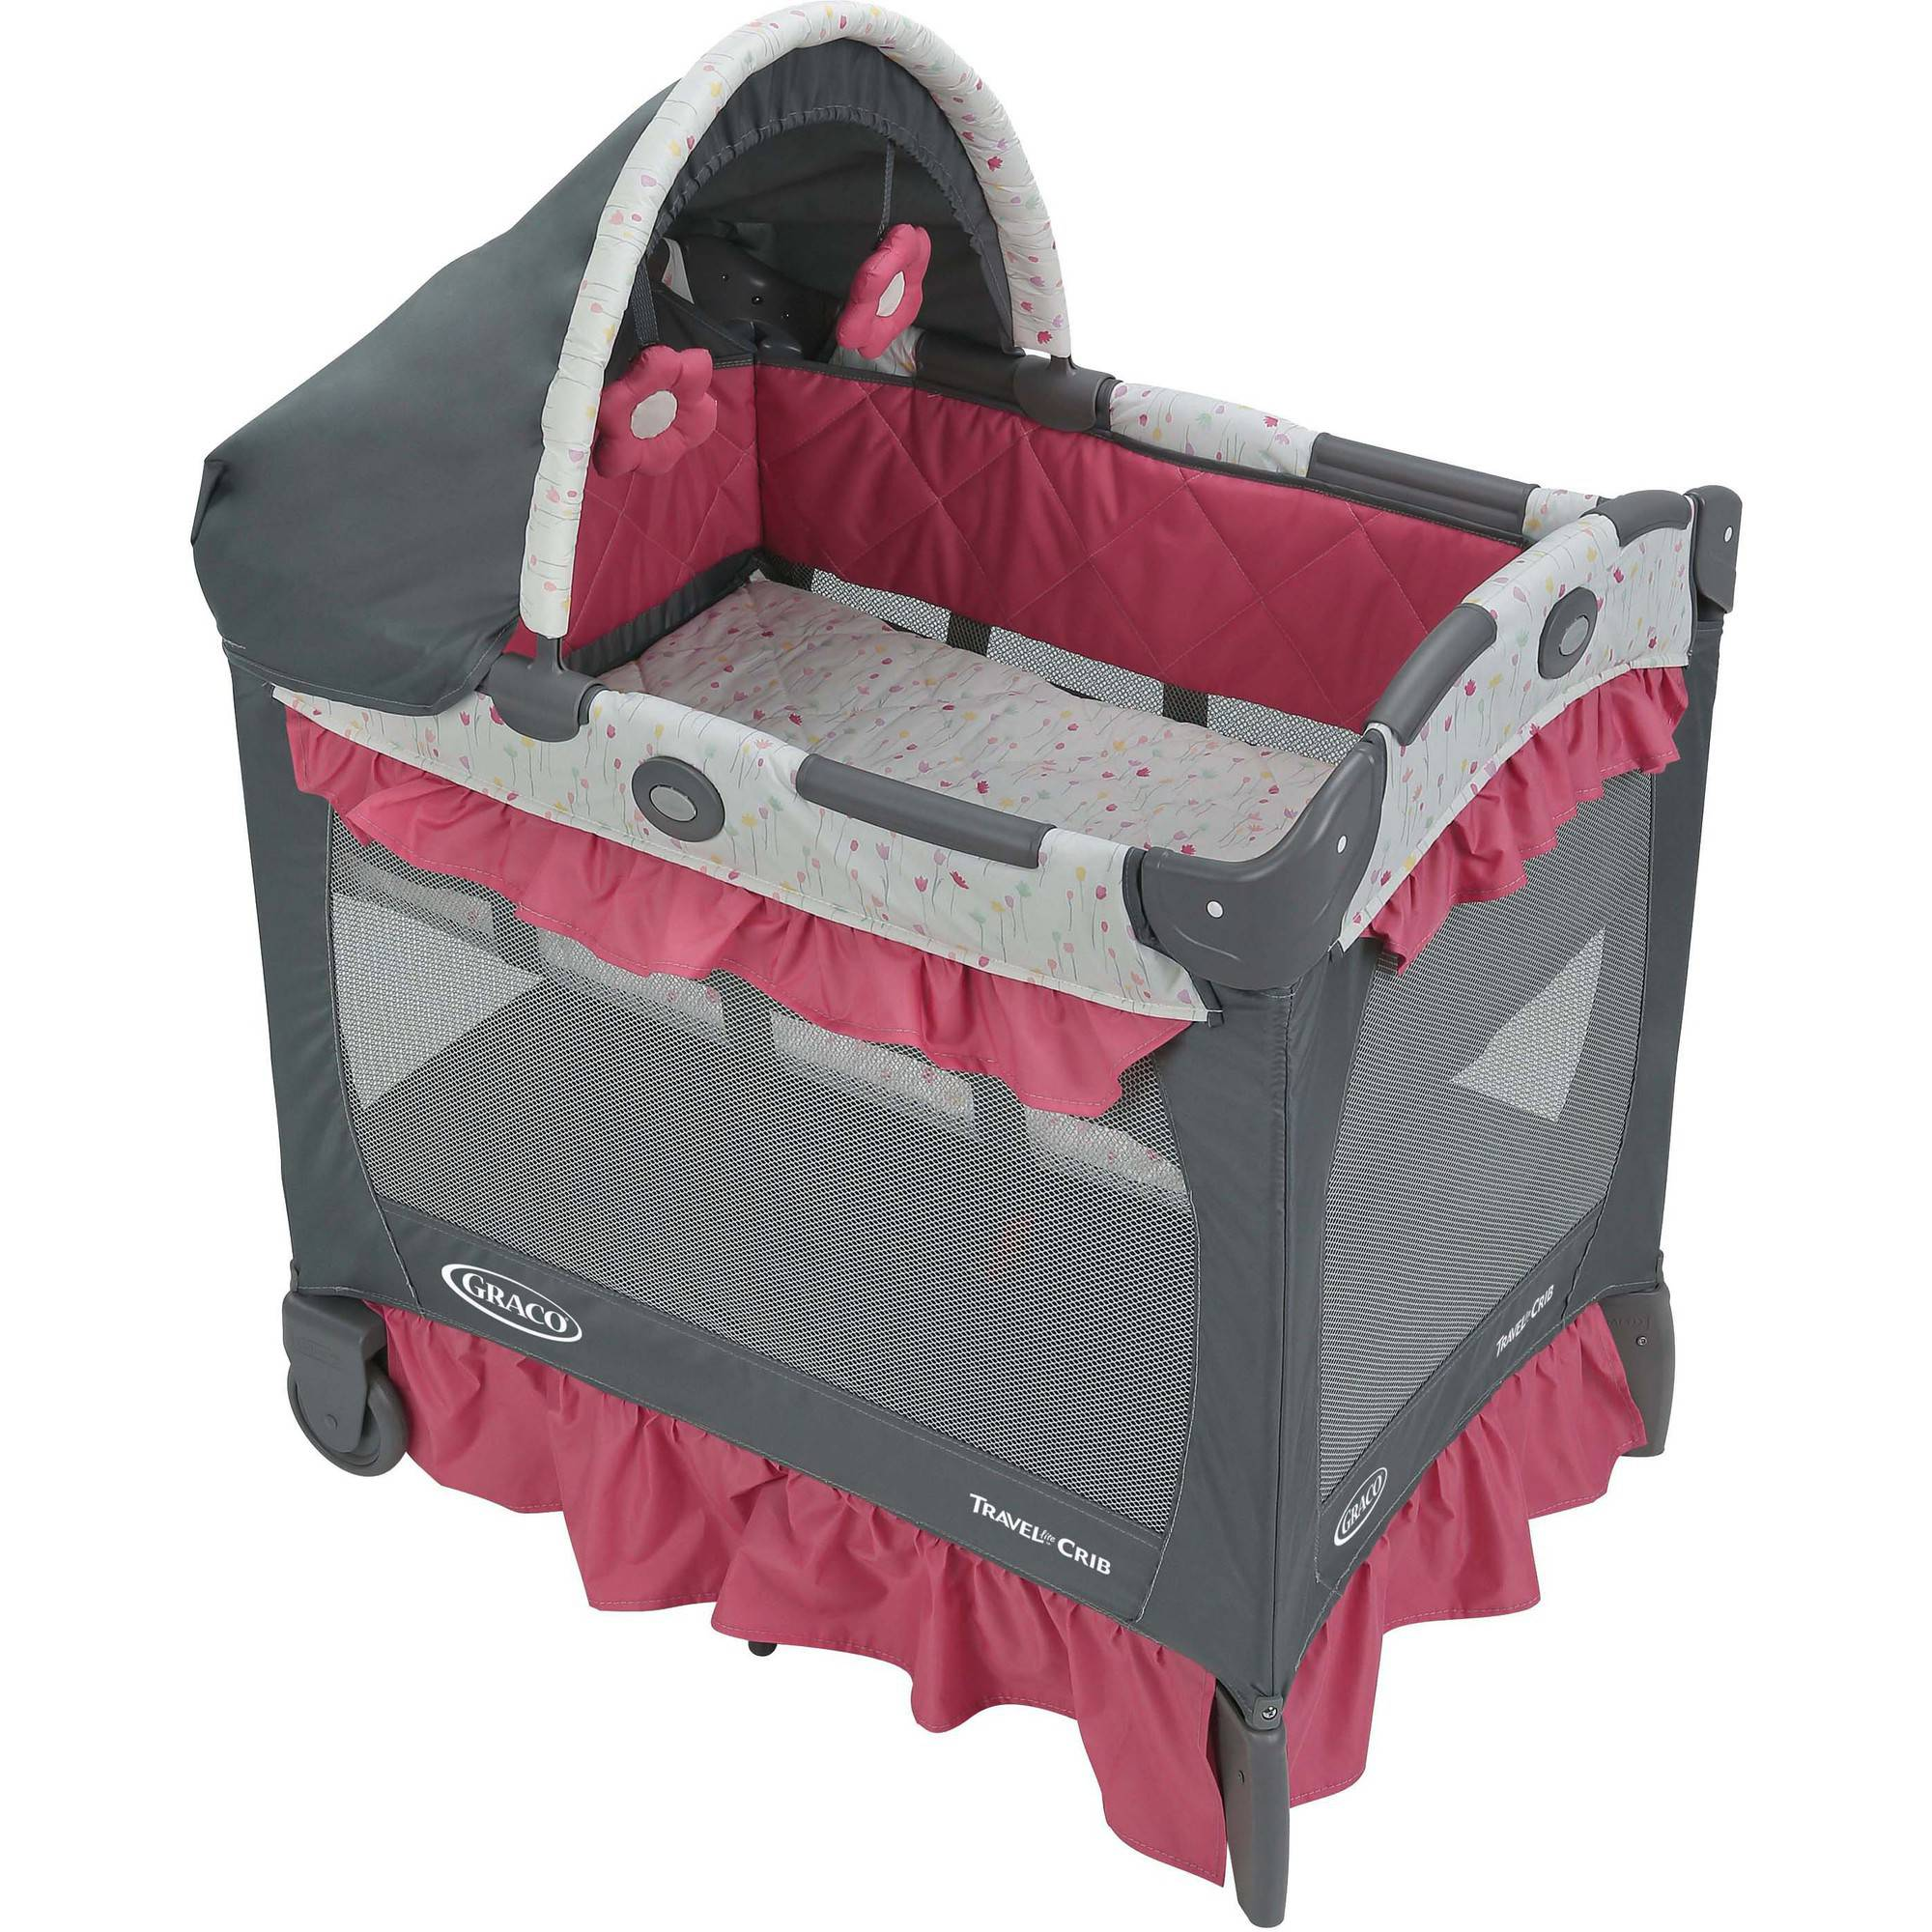 Graco Pack 'n Play Travel Lite Crib, Portable Baby Play Pen Crib, Alma by Graco